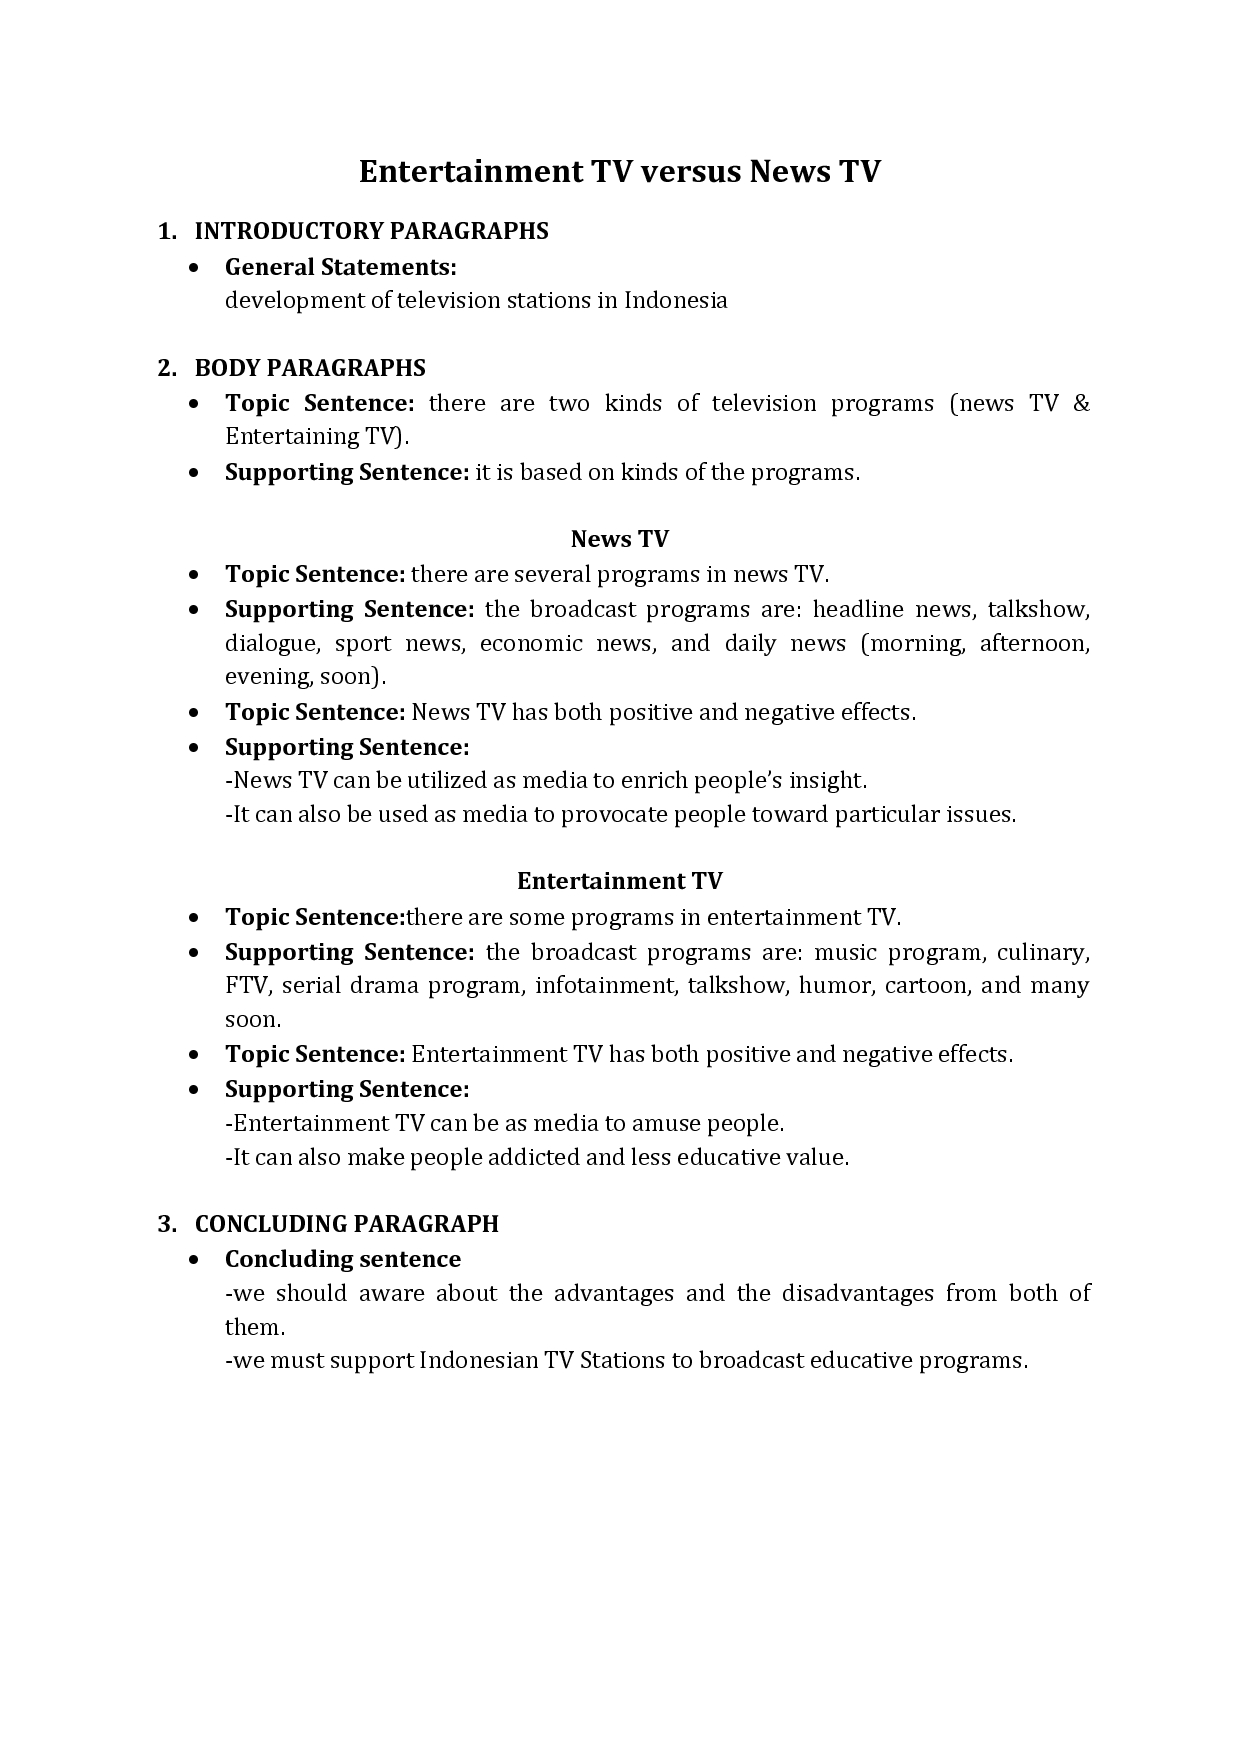 013 Essay Example College Outline Examples And Search On Pinterest Inmat What Is An Singular For Informal Full